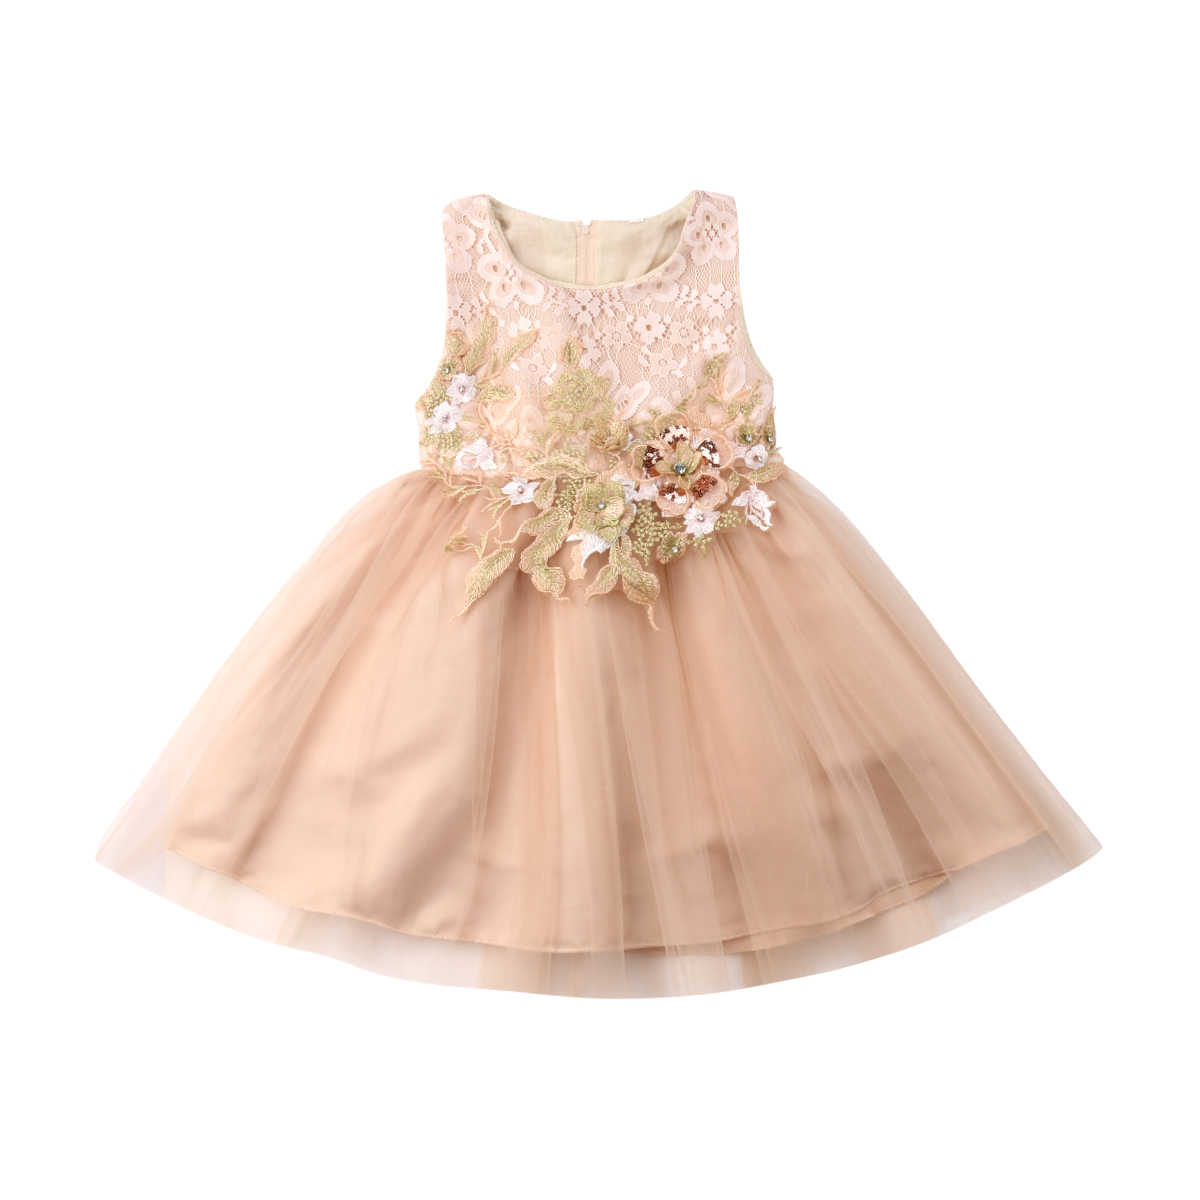 Detail Feedback Questions about 3 10Y Dress For Girl Wedding Tulle Lace  Girl Dress Elegant Princess Party Pageant Formal Gown For Teen Children  Flower Dress ... 37ad32c92d3d